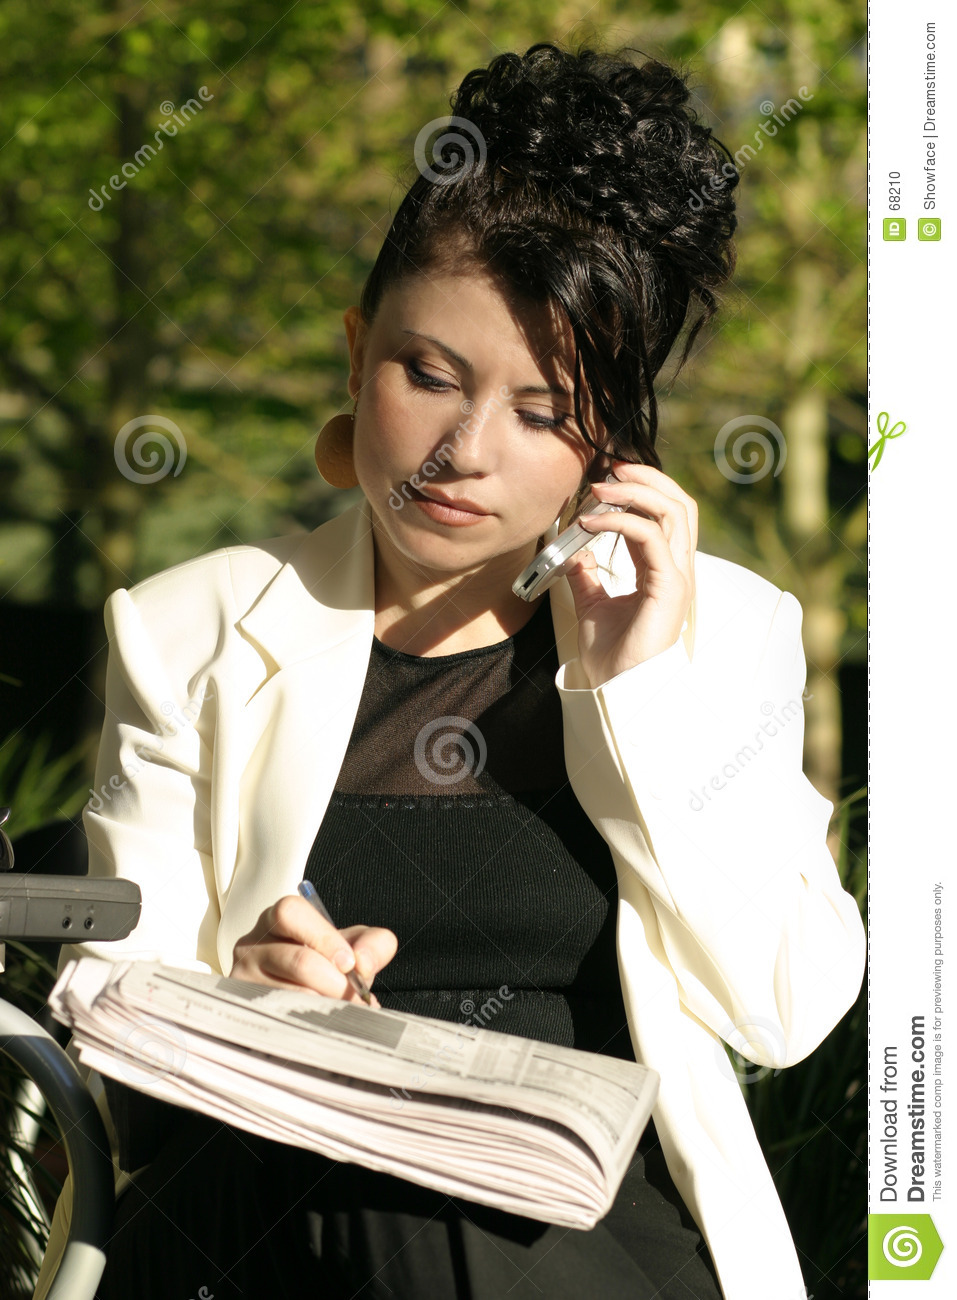 Woman at cafe doing business